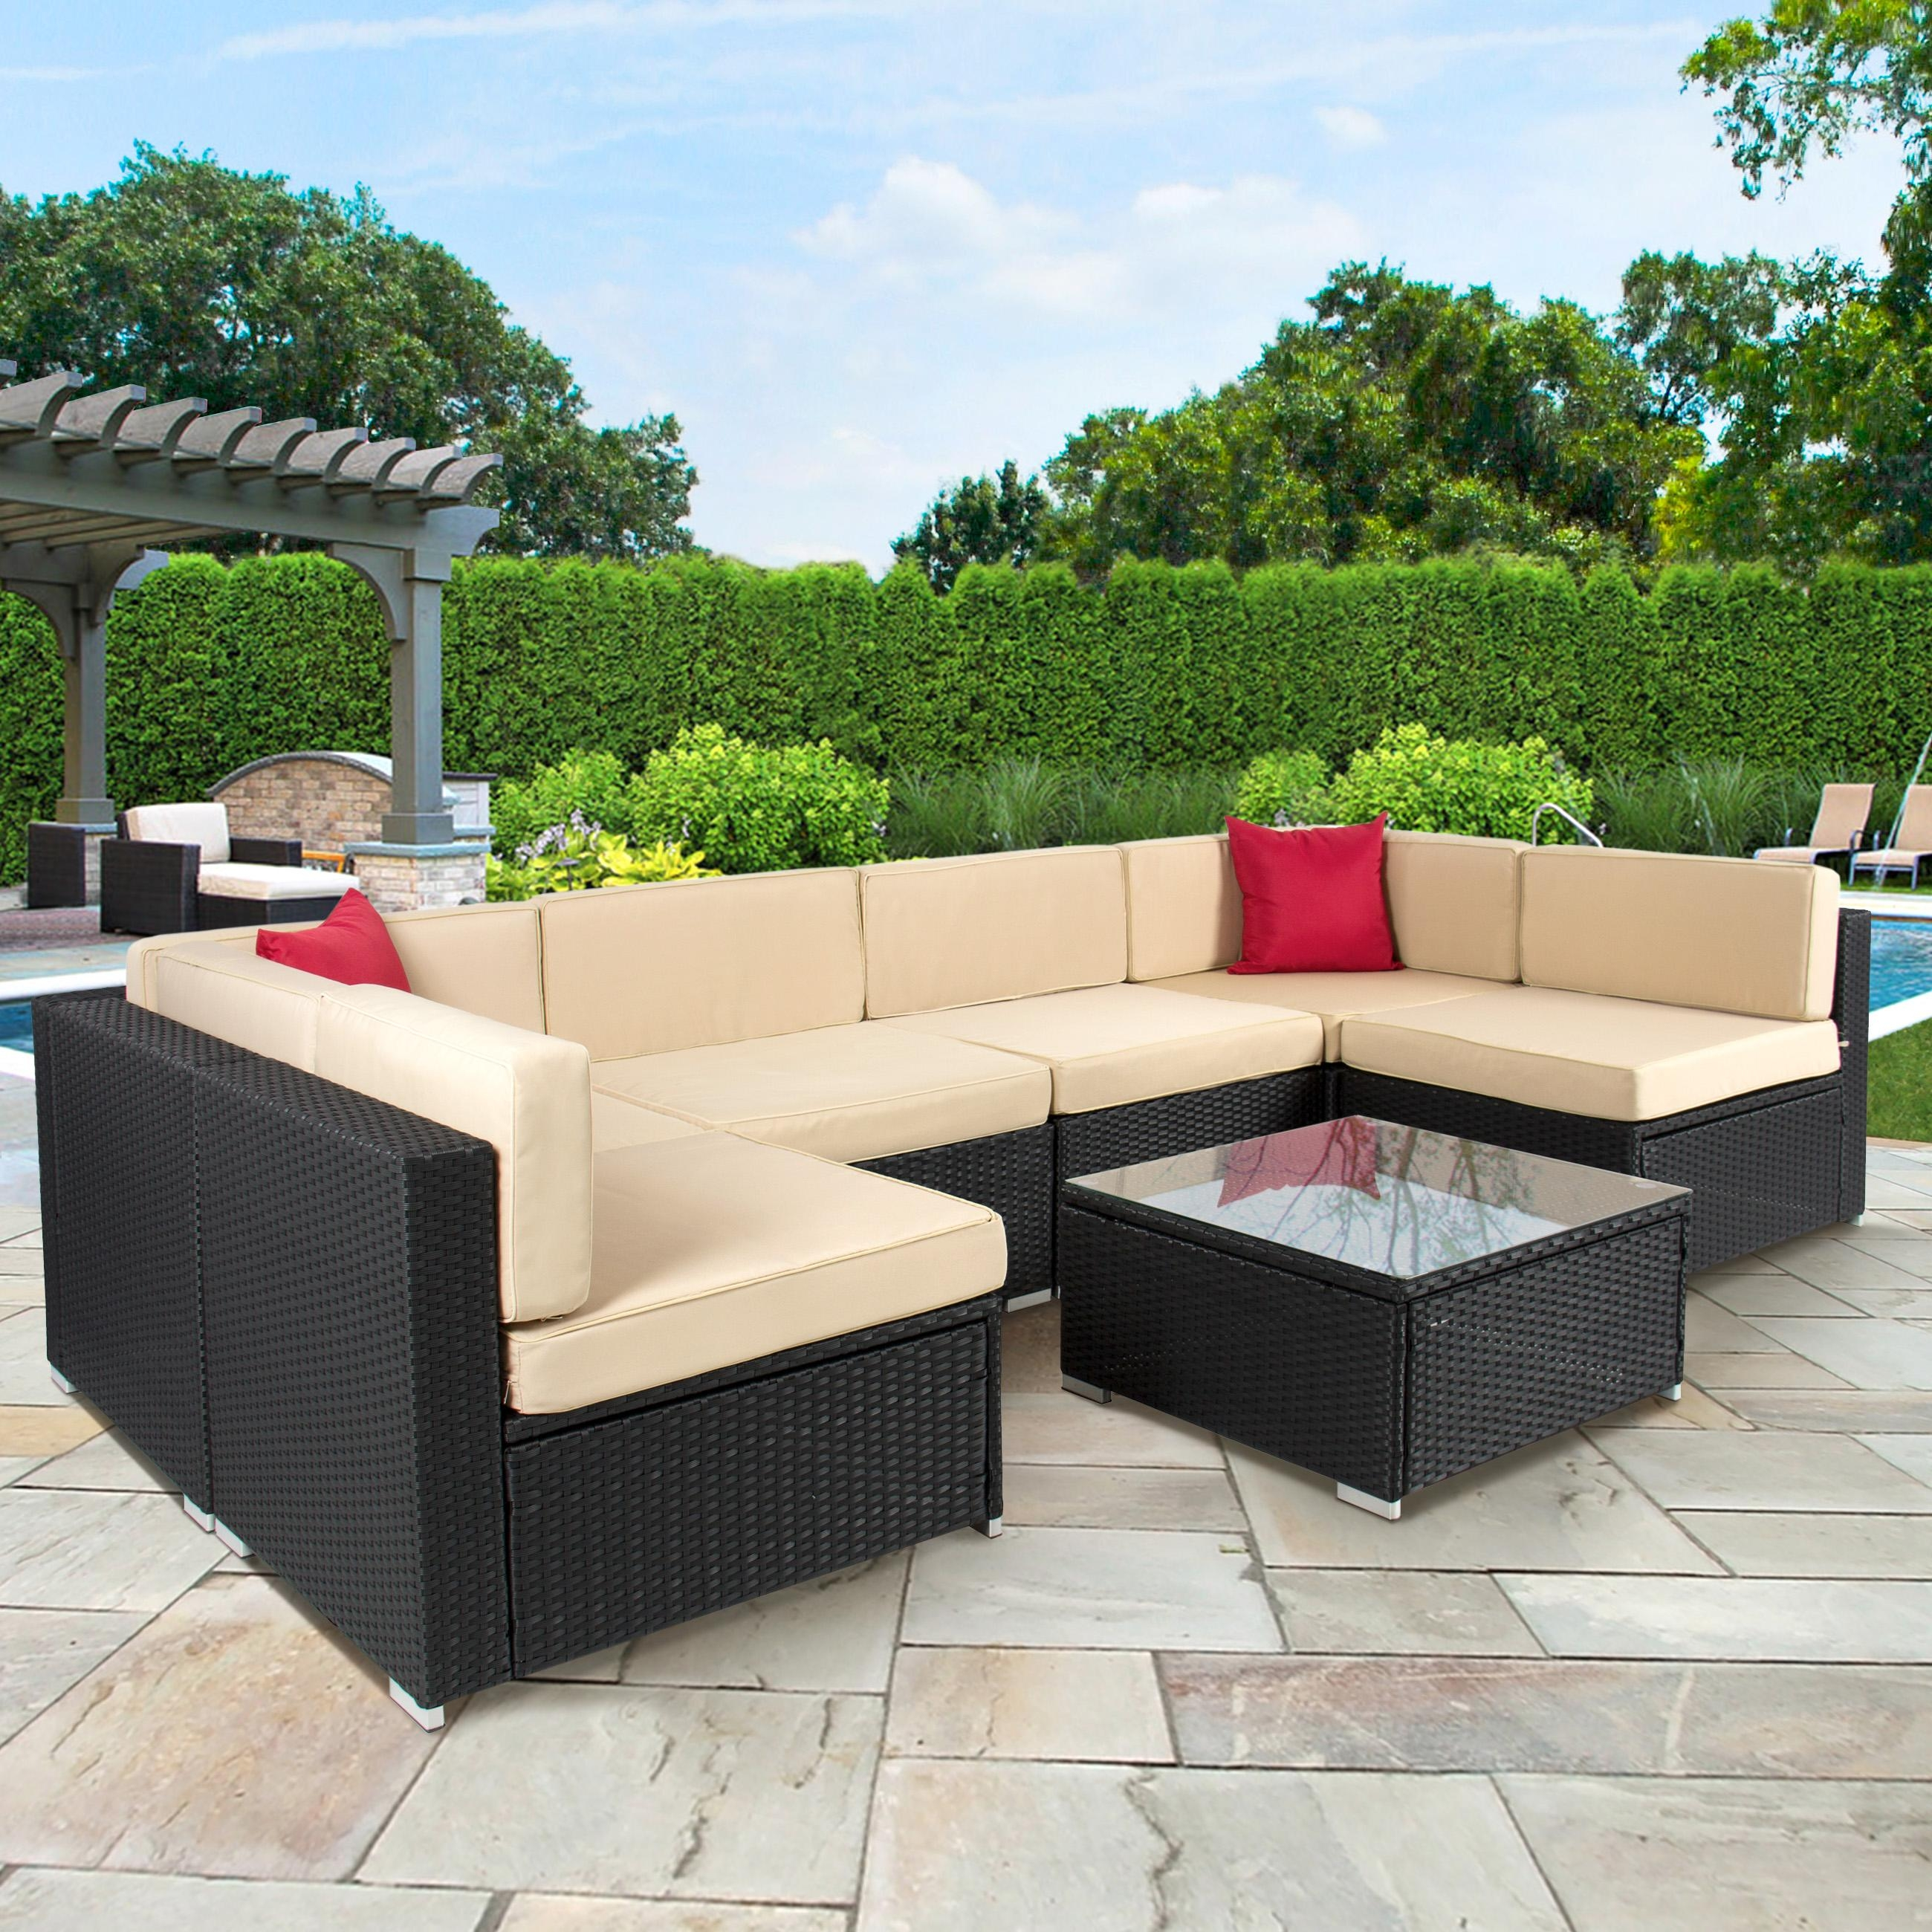 Best Choice Products Outdoor Garden Patio 4Pc Cushioned Seat Black In Cheap Patio Sofas (Image 3 of 22)